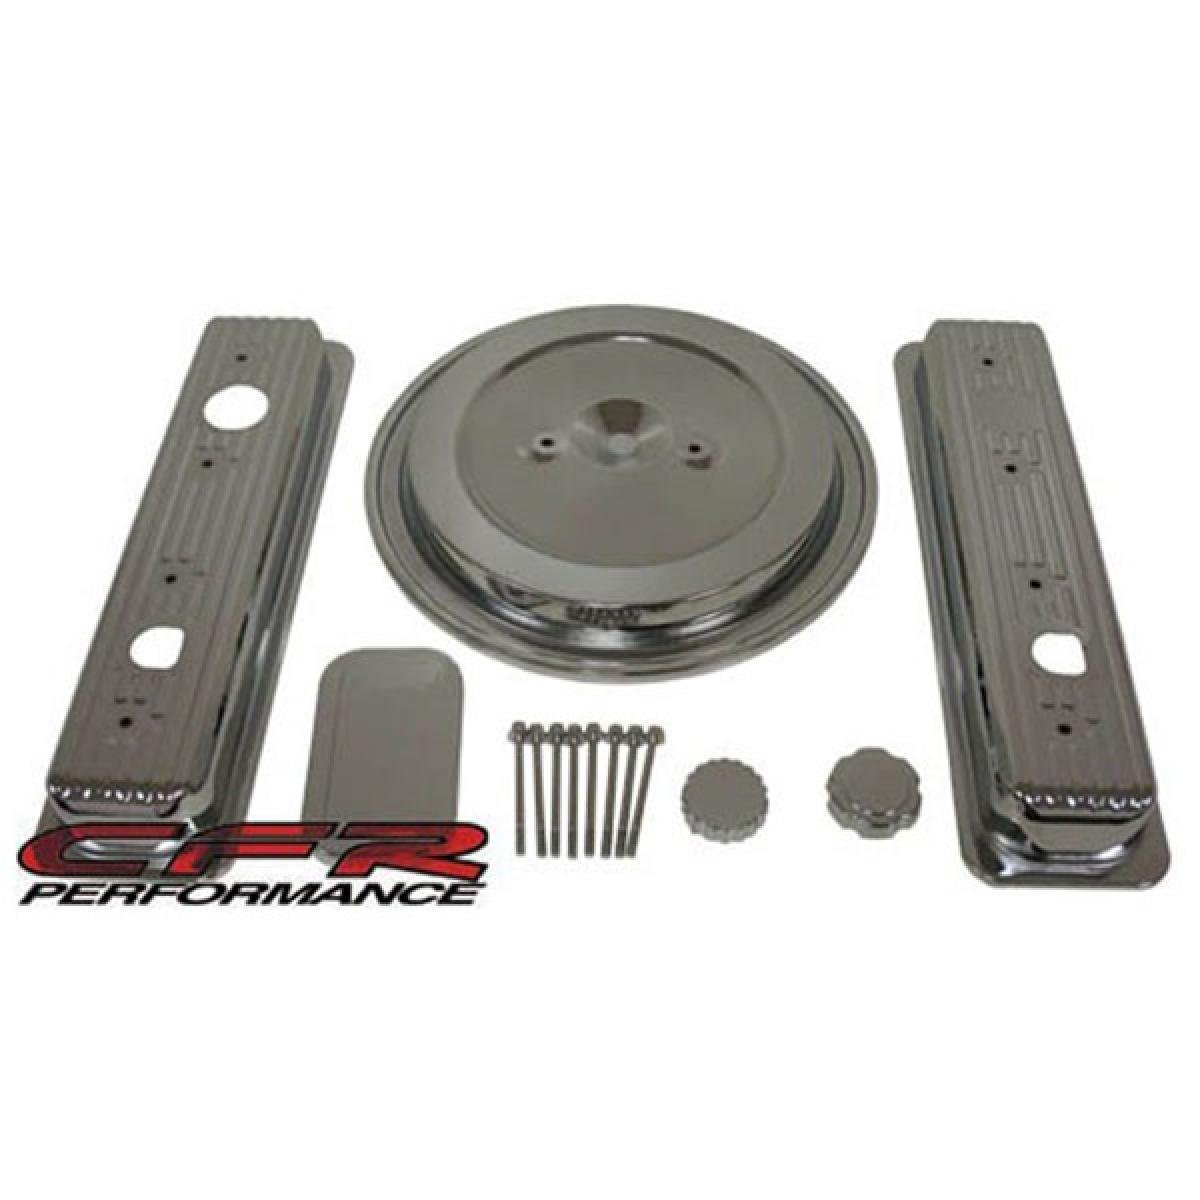 Smooth 1993-94 Chevy//GMC 5.0L /& 5.7L Truck Chrome Steel Engine Dress Up Kit